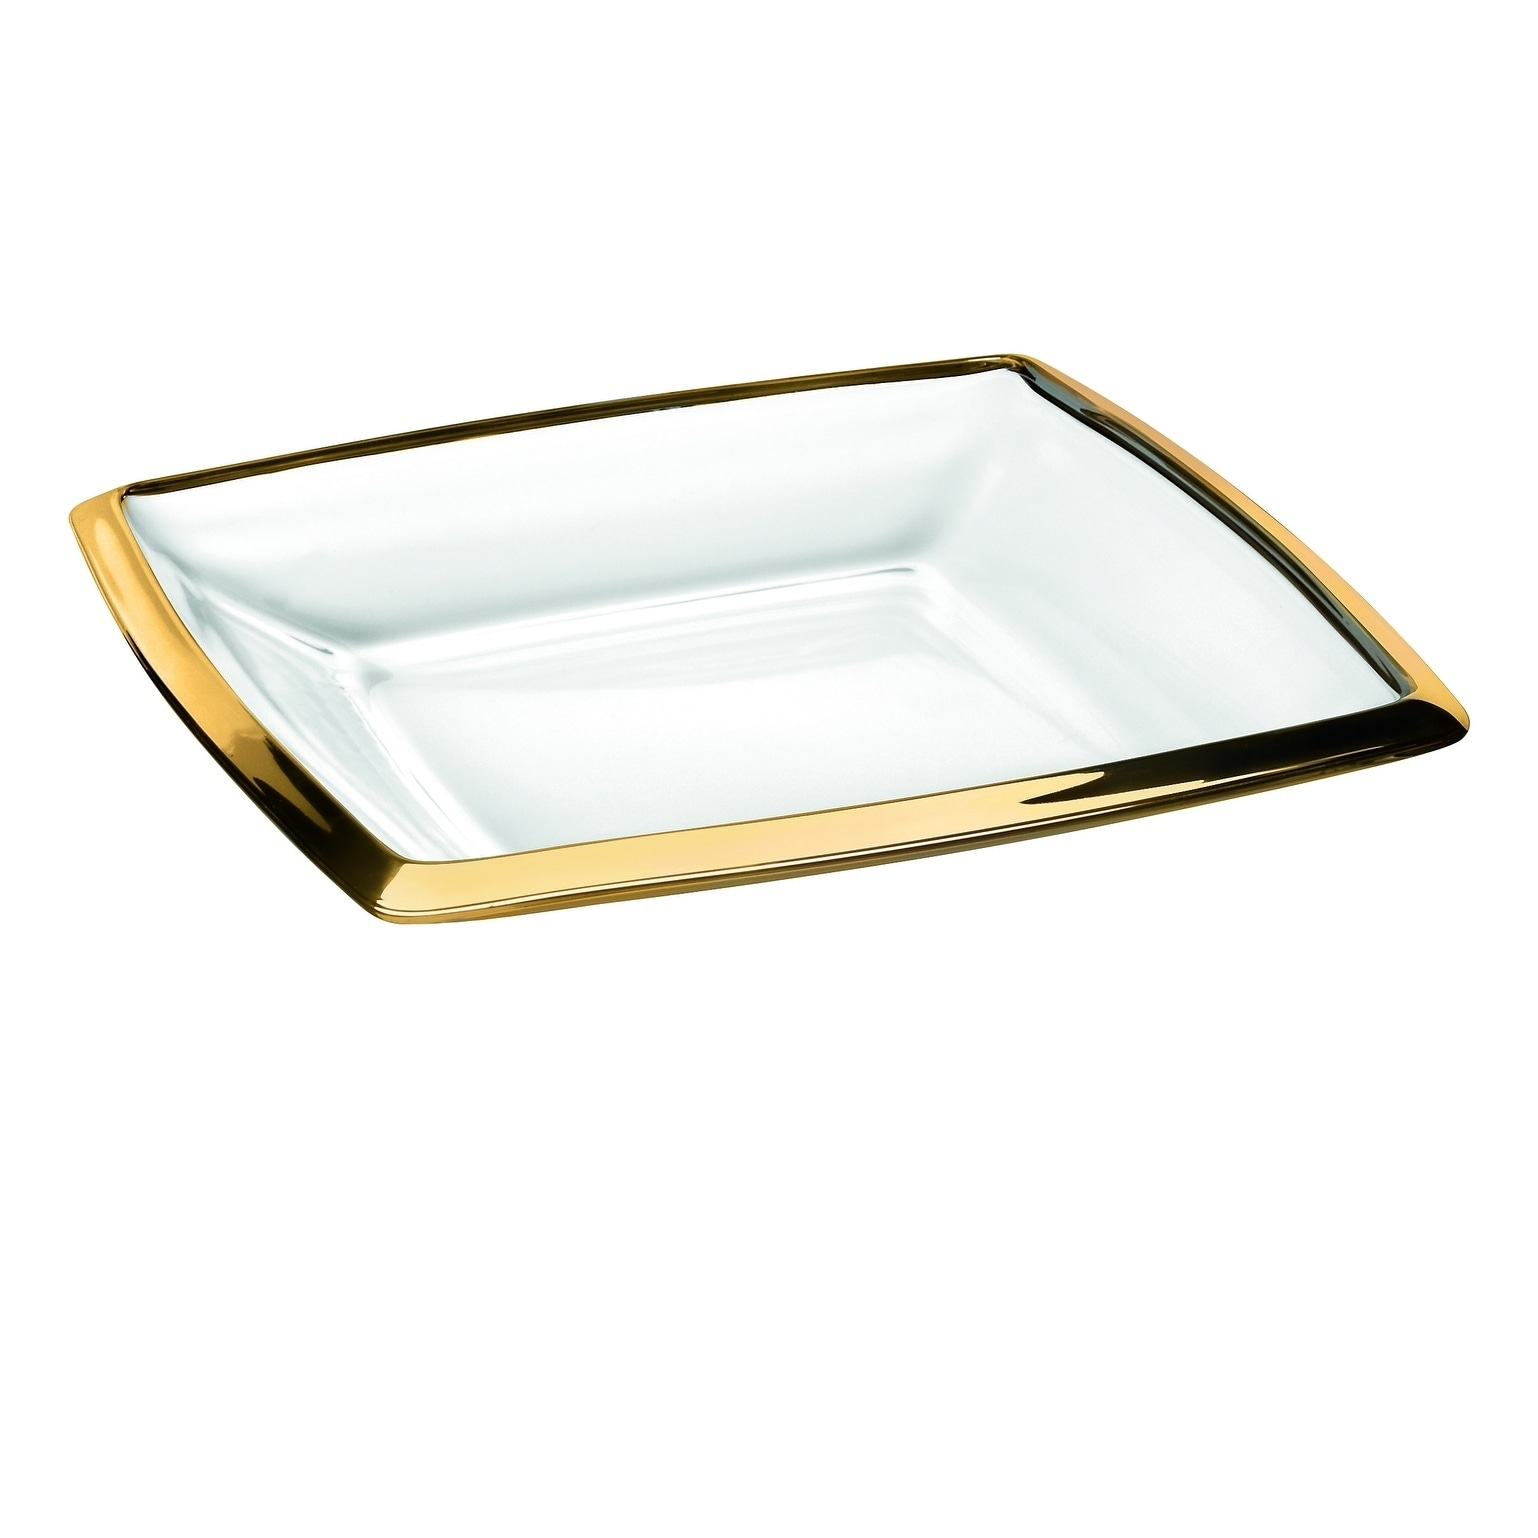 Gold Serving Tray Majestic Gifts European High Quality Glass Platter Serving Tray Plate With Gold Rim 11